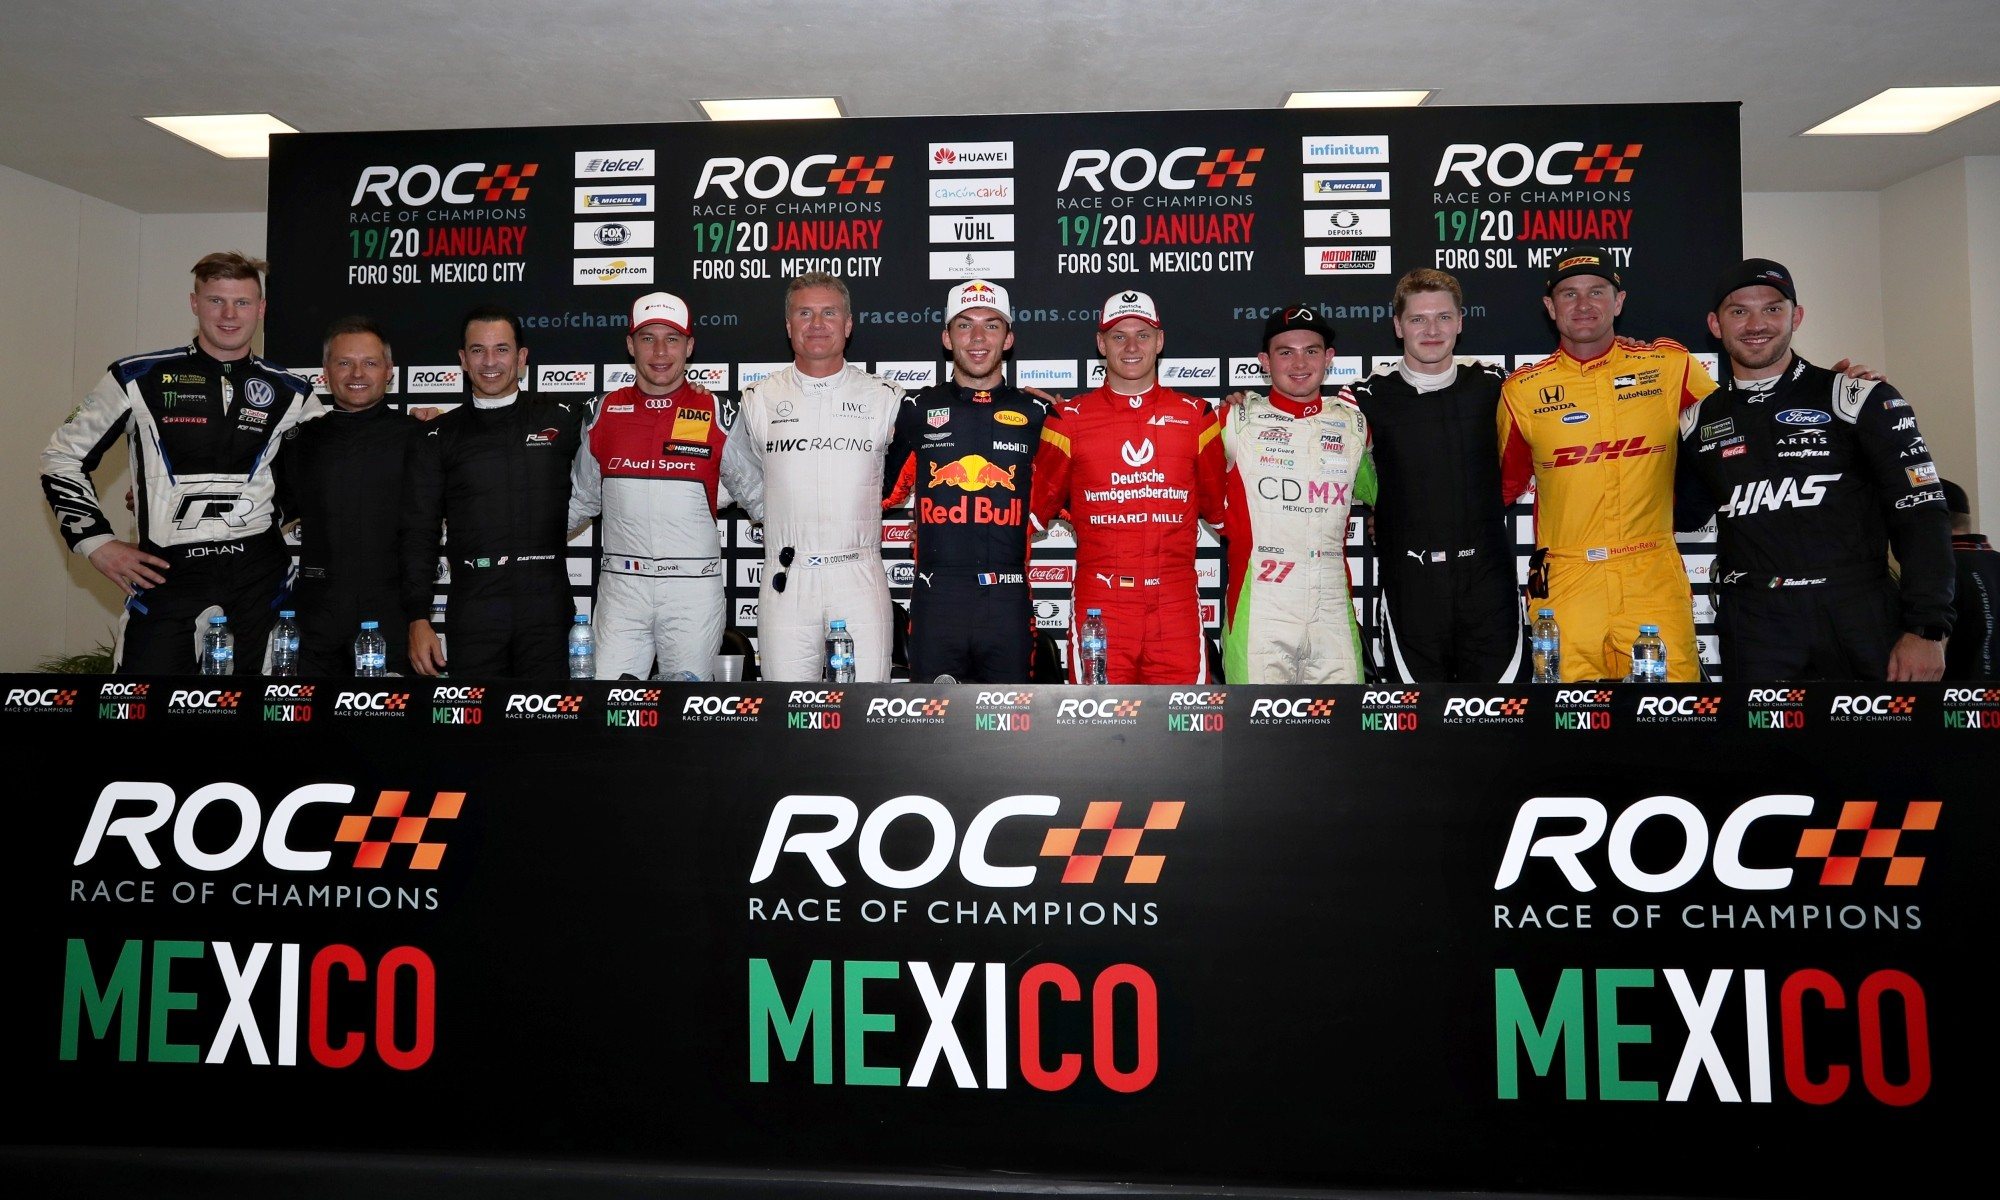 2019 Race of Champions driver line-up